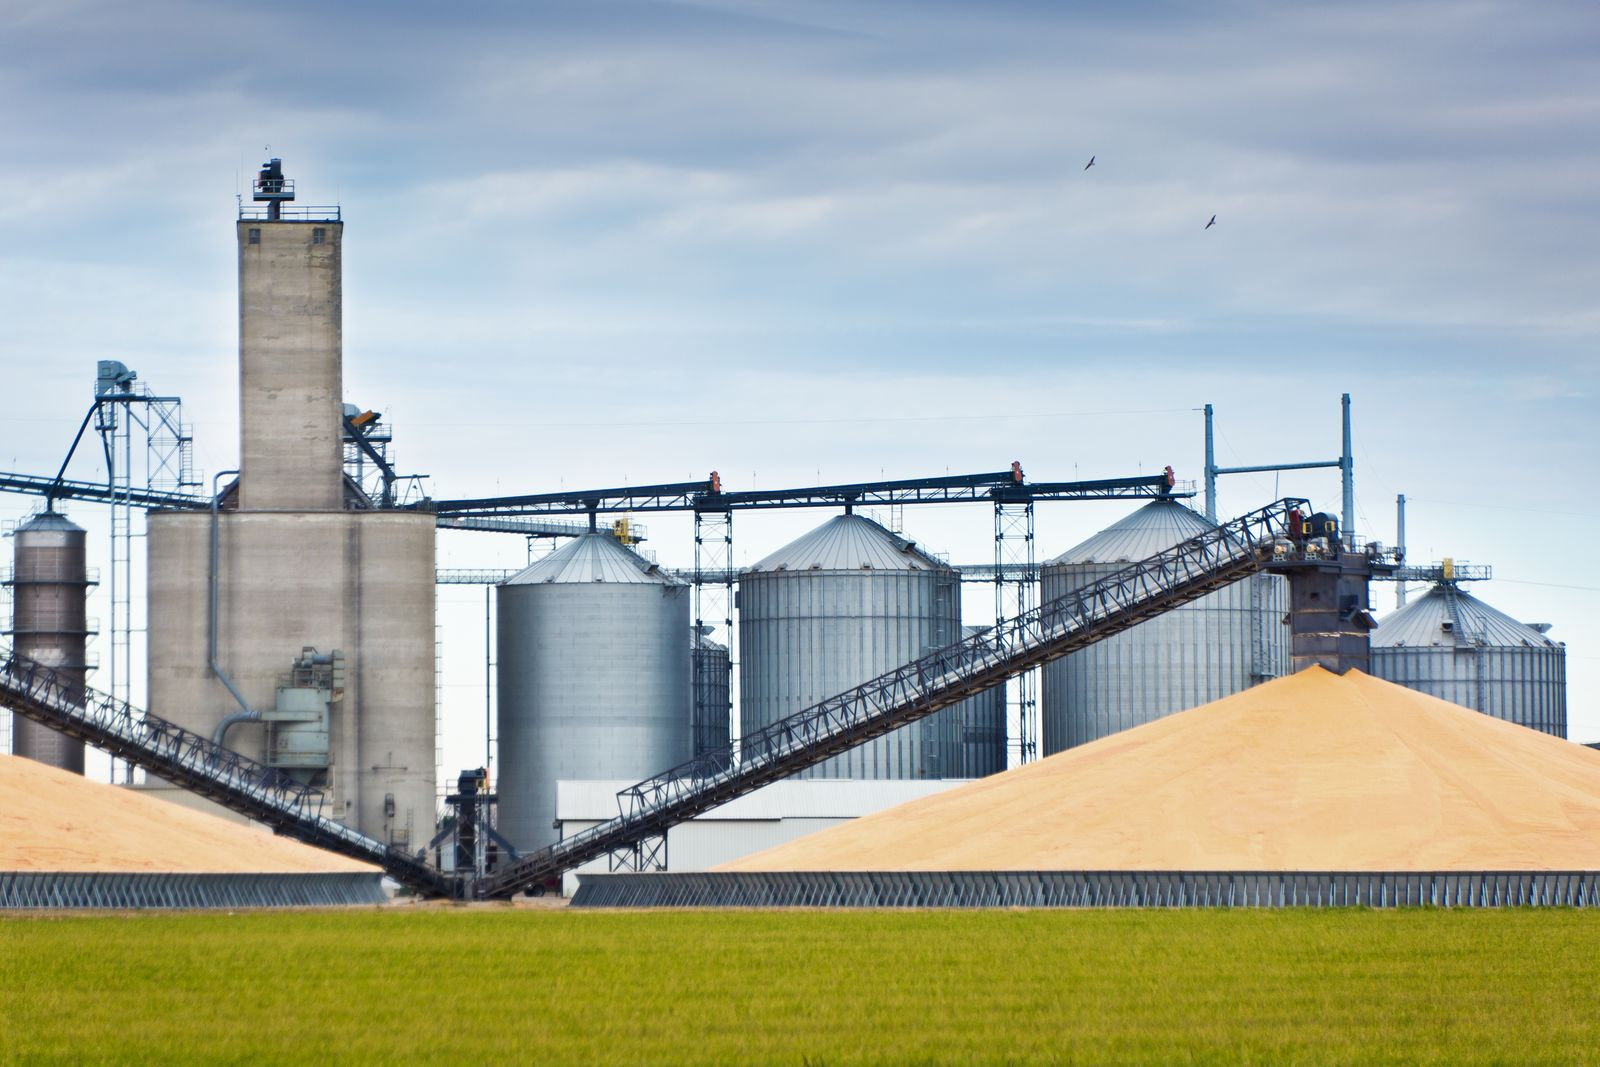 Corn Harvest and Processing Silos in Autumn